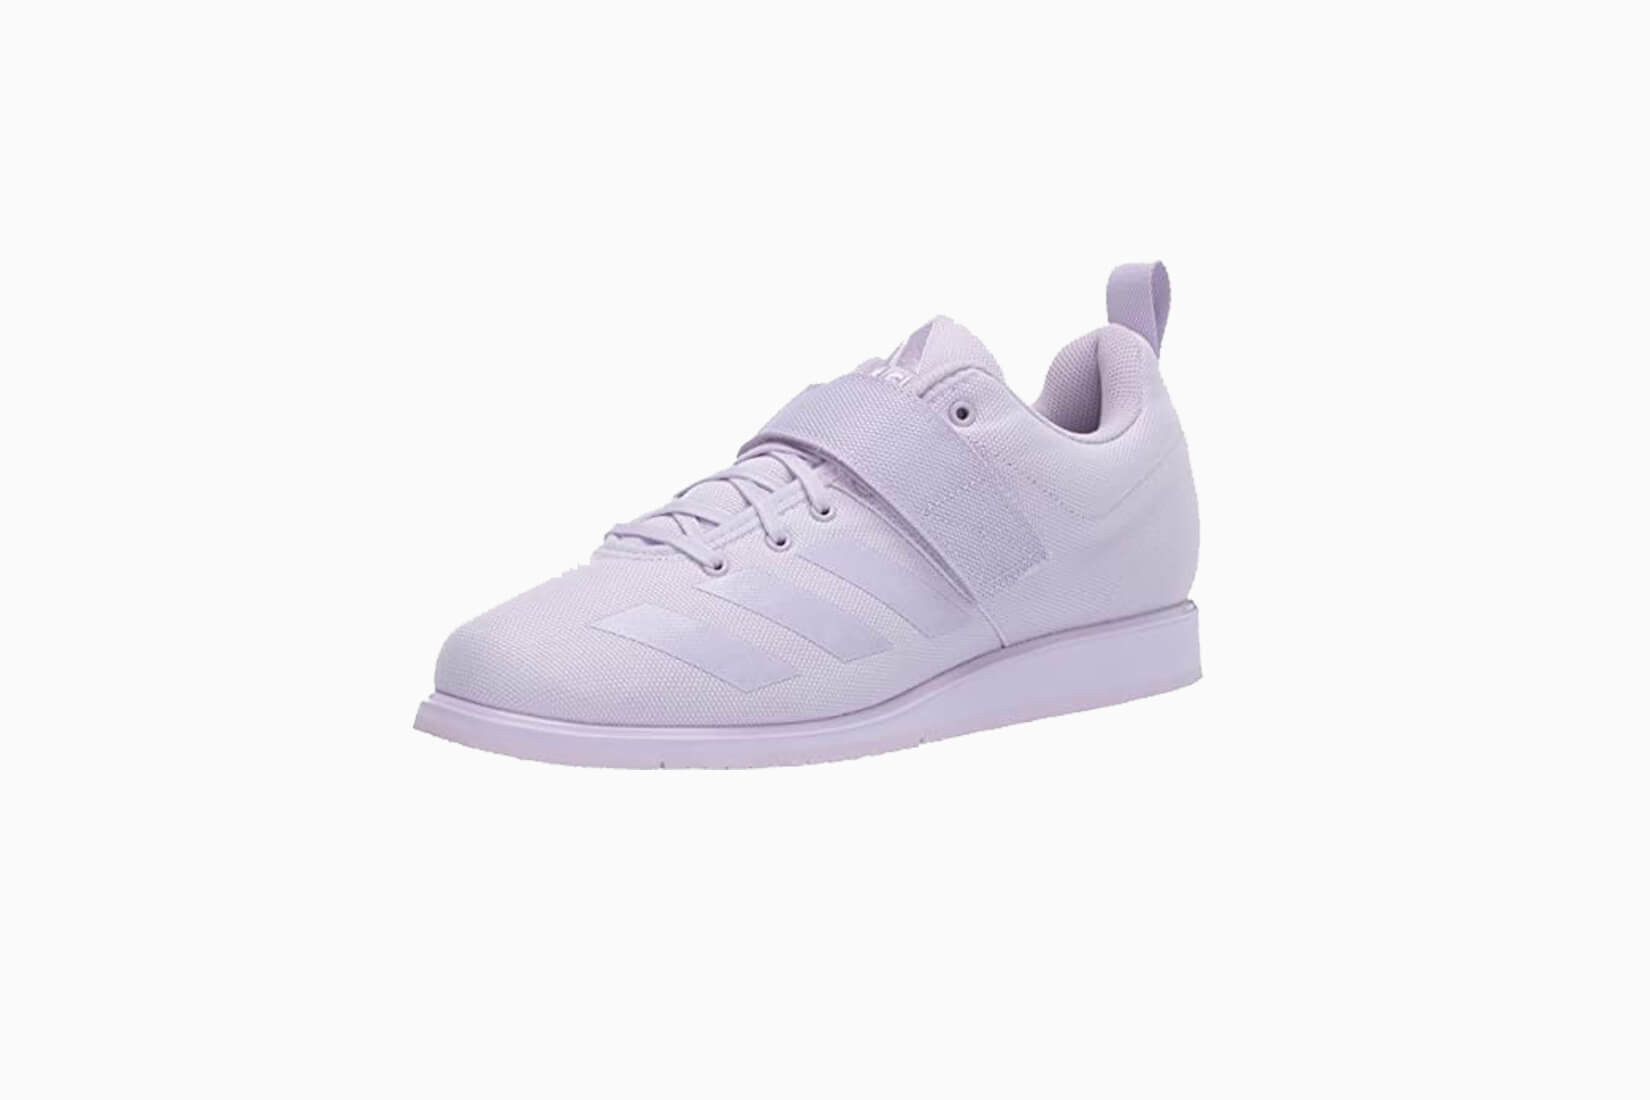 19 Best Women's Workout Shoes For Every Type Of Exercise (2021)